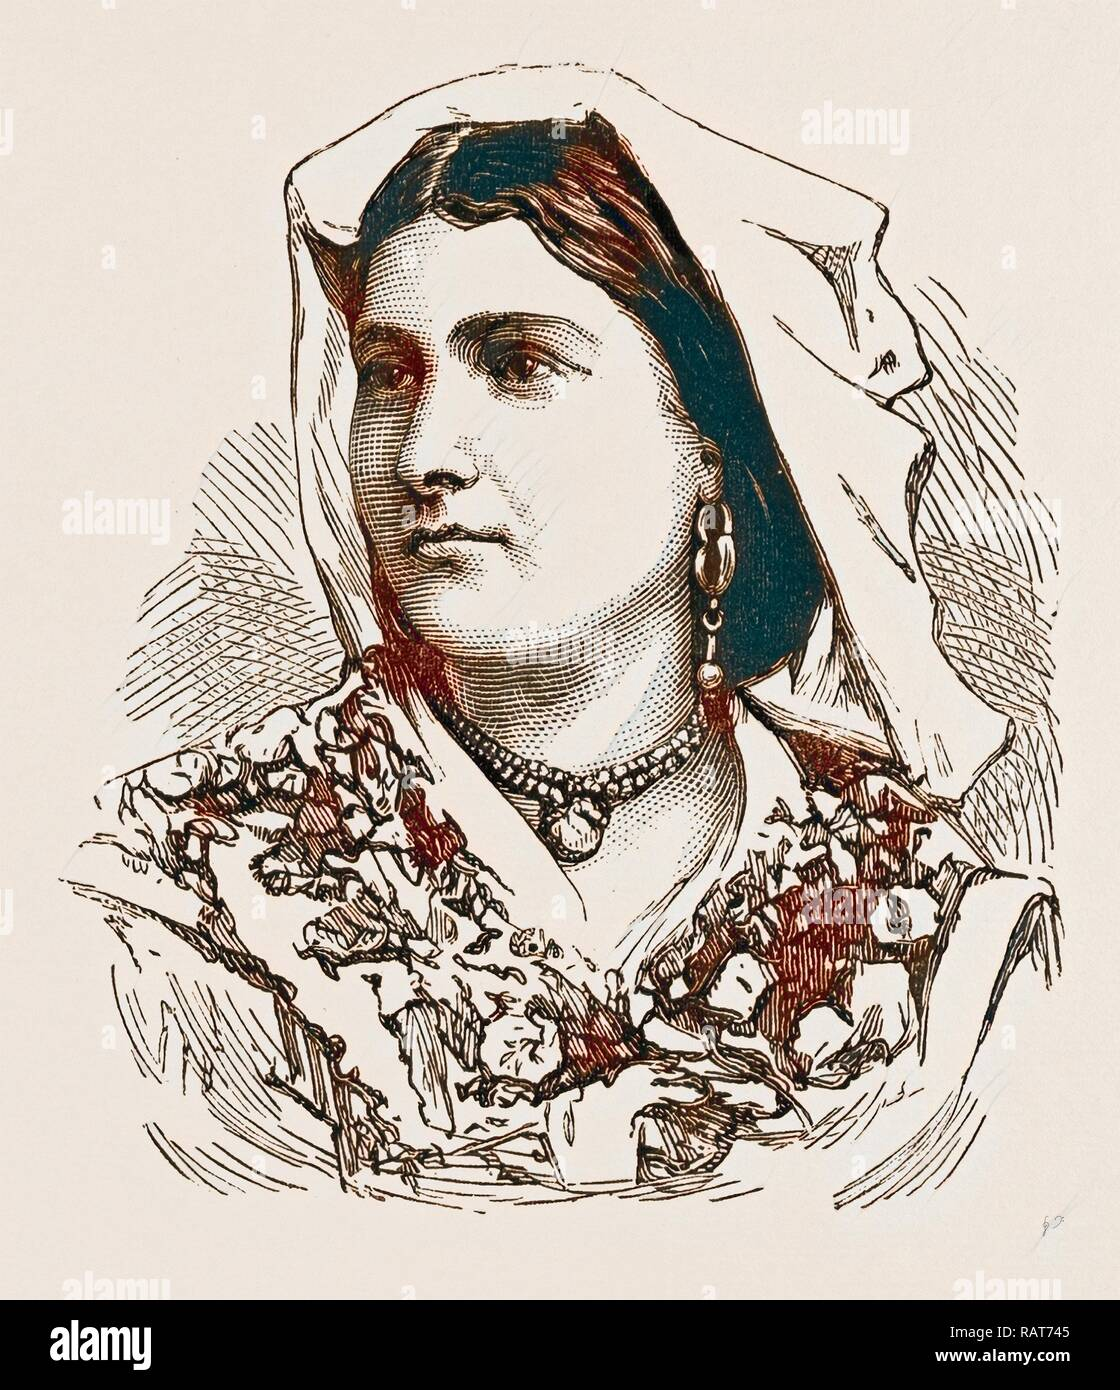 PEASANT WOMAN, ENGRAVING 1873, ITALY. Reimagined by Gibon. Classic art with a modern twist reimagined - Stock Image